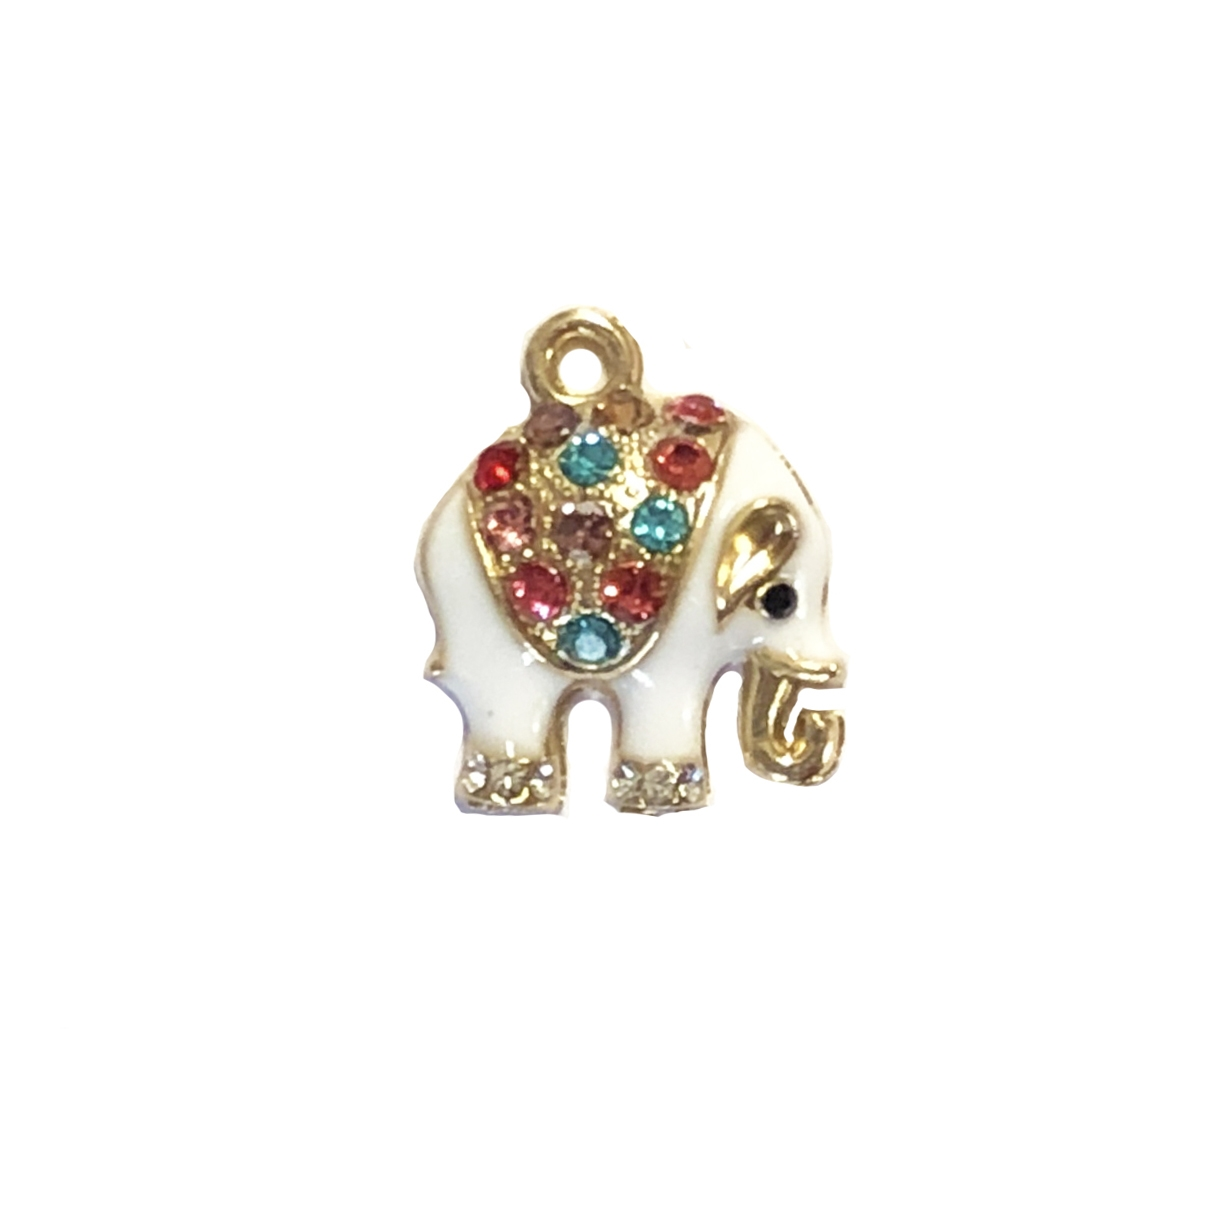 bejeweled elephants, elephant charm, 09832, B'sue Boutiques, lead free, jewelry supplies, zinc alloy, multi-color rhinestones, circus animals, elephant jewelry, jungle, animals, safari, charms, animal charm, white enamel